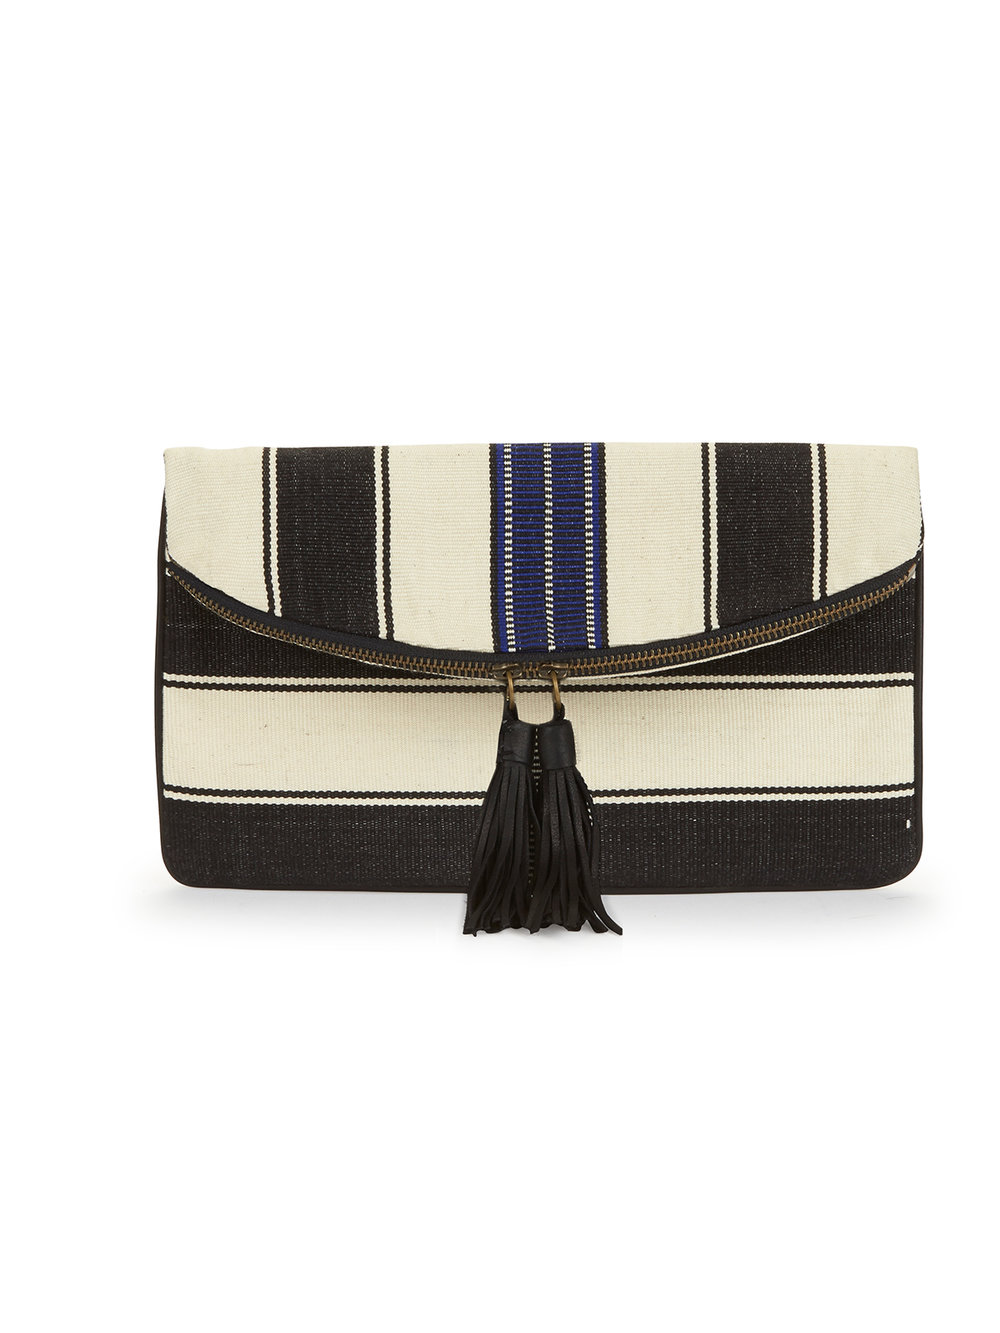 Maribel_Clutch_black-white-Stripe_11455.jpg